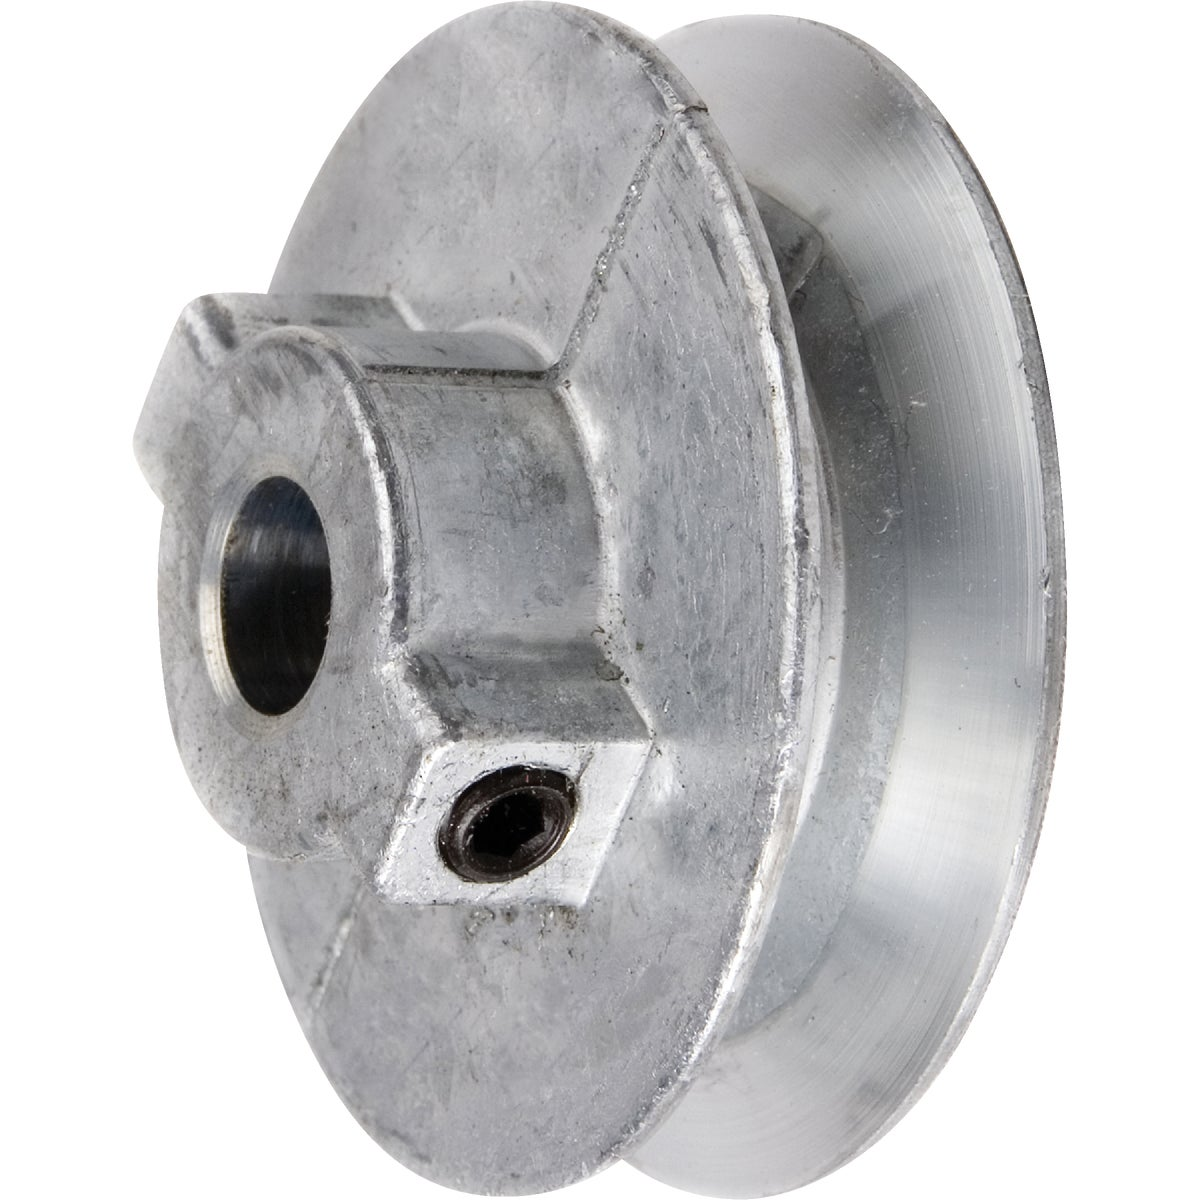 6X3/4 PULLEY - 600A7 by Chicago Die Casting